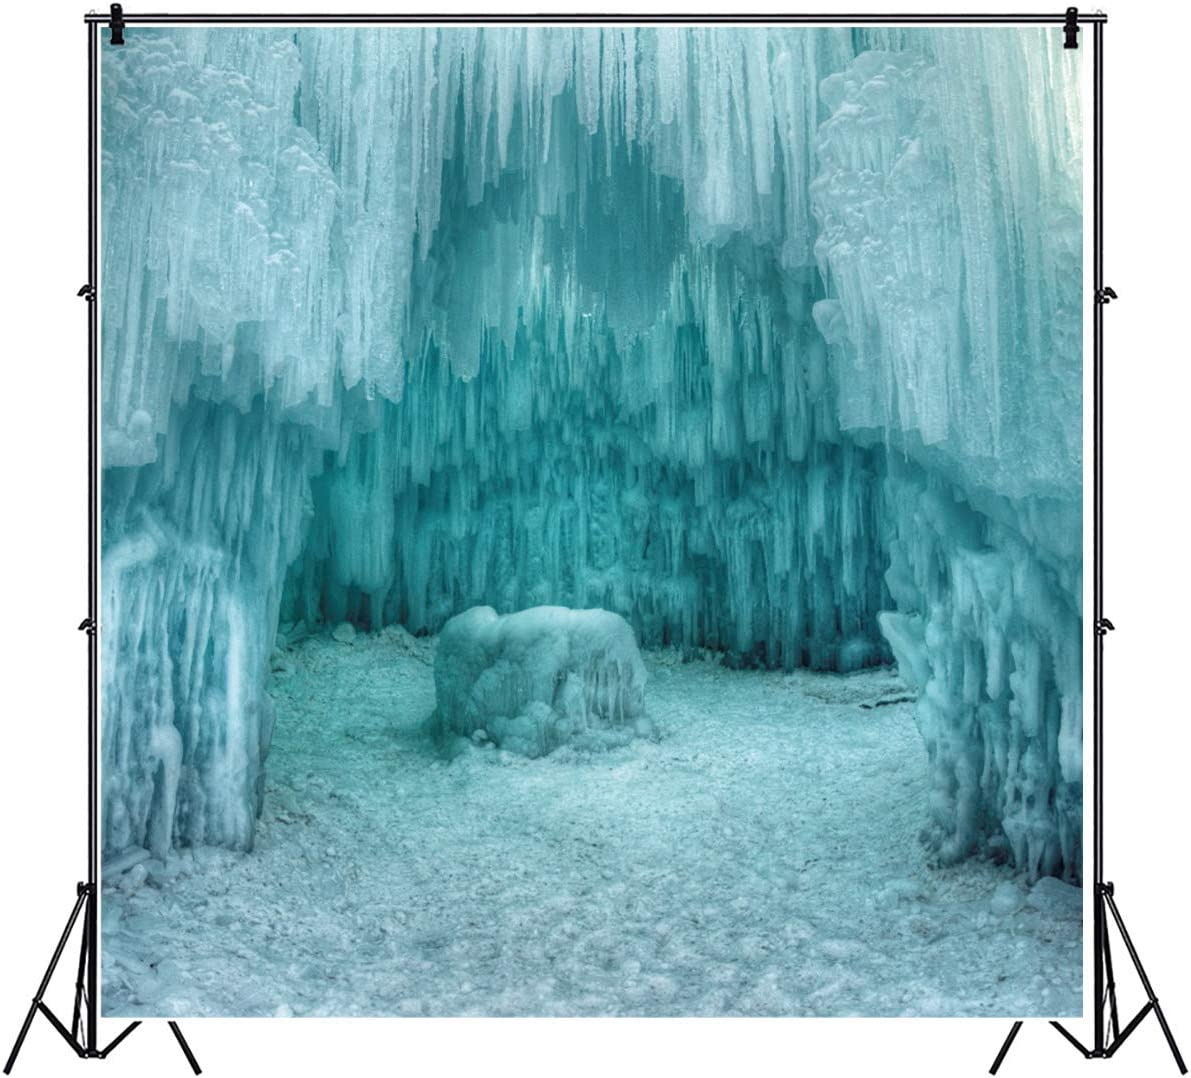 6x4FT Glacier Backdrop Ice Cave Icicle Snow Photography Background Birthday Party Decoration Newborn Kids Baby Adults Baby Shower Vinyl Photo Booth Props